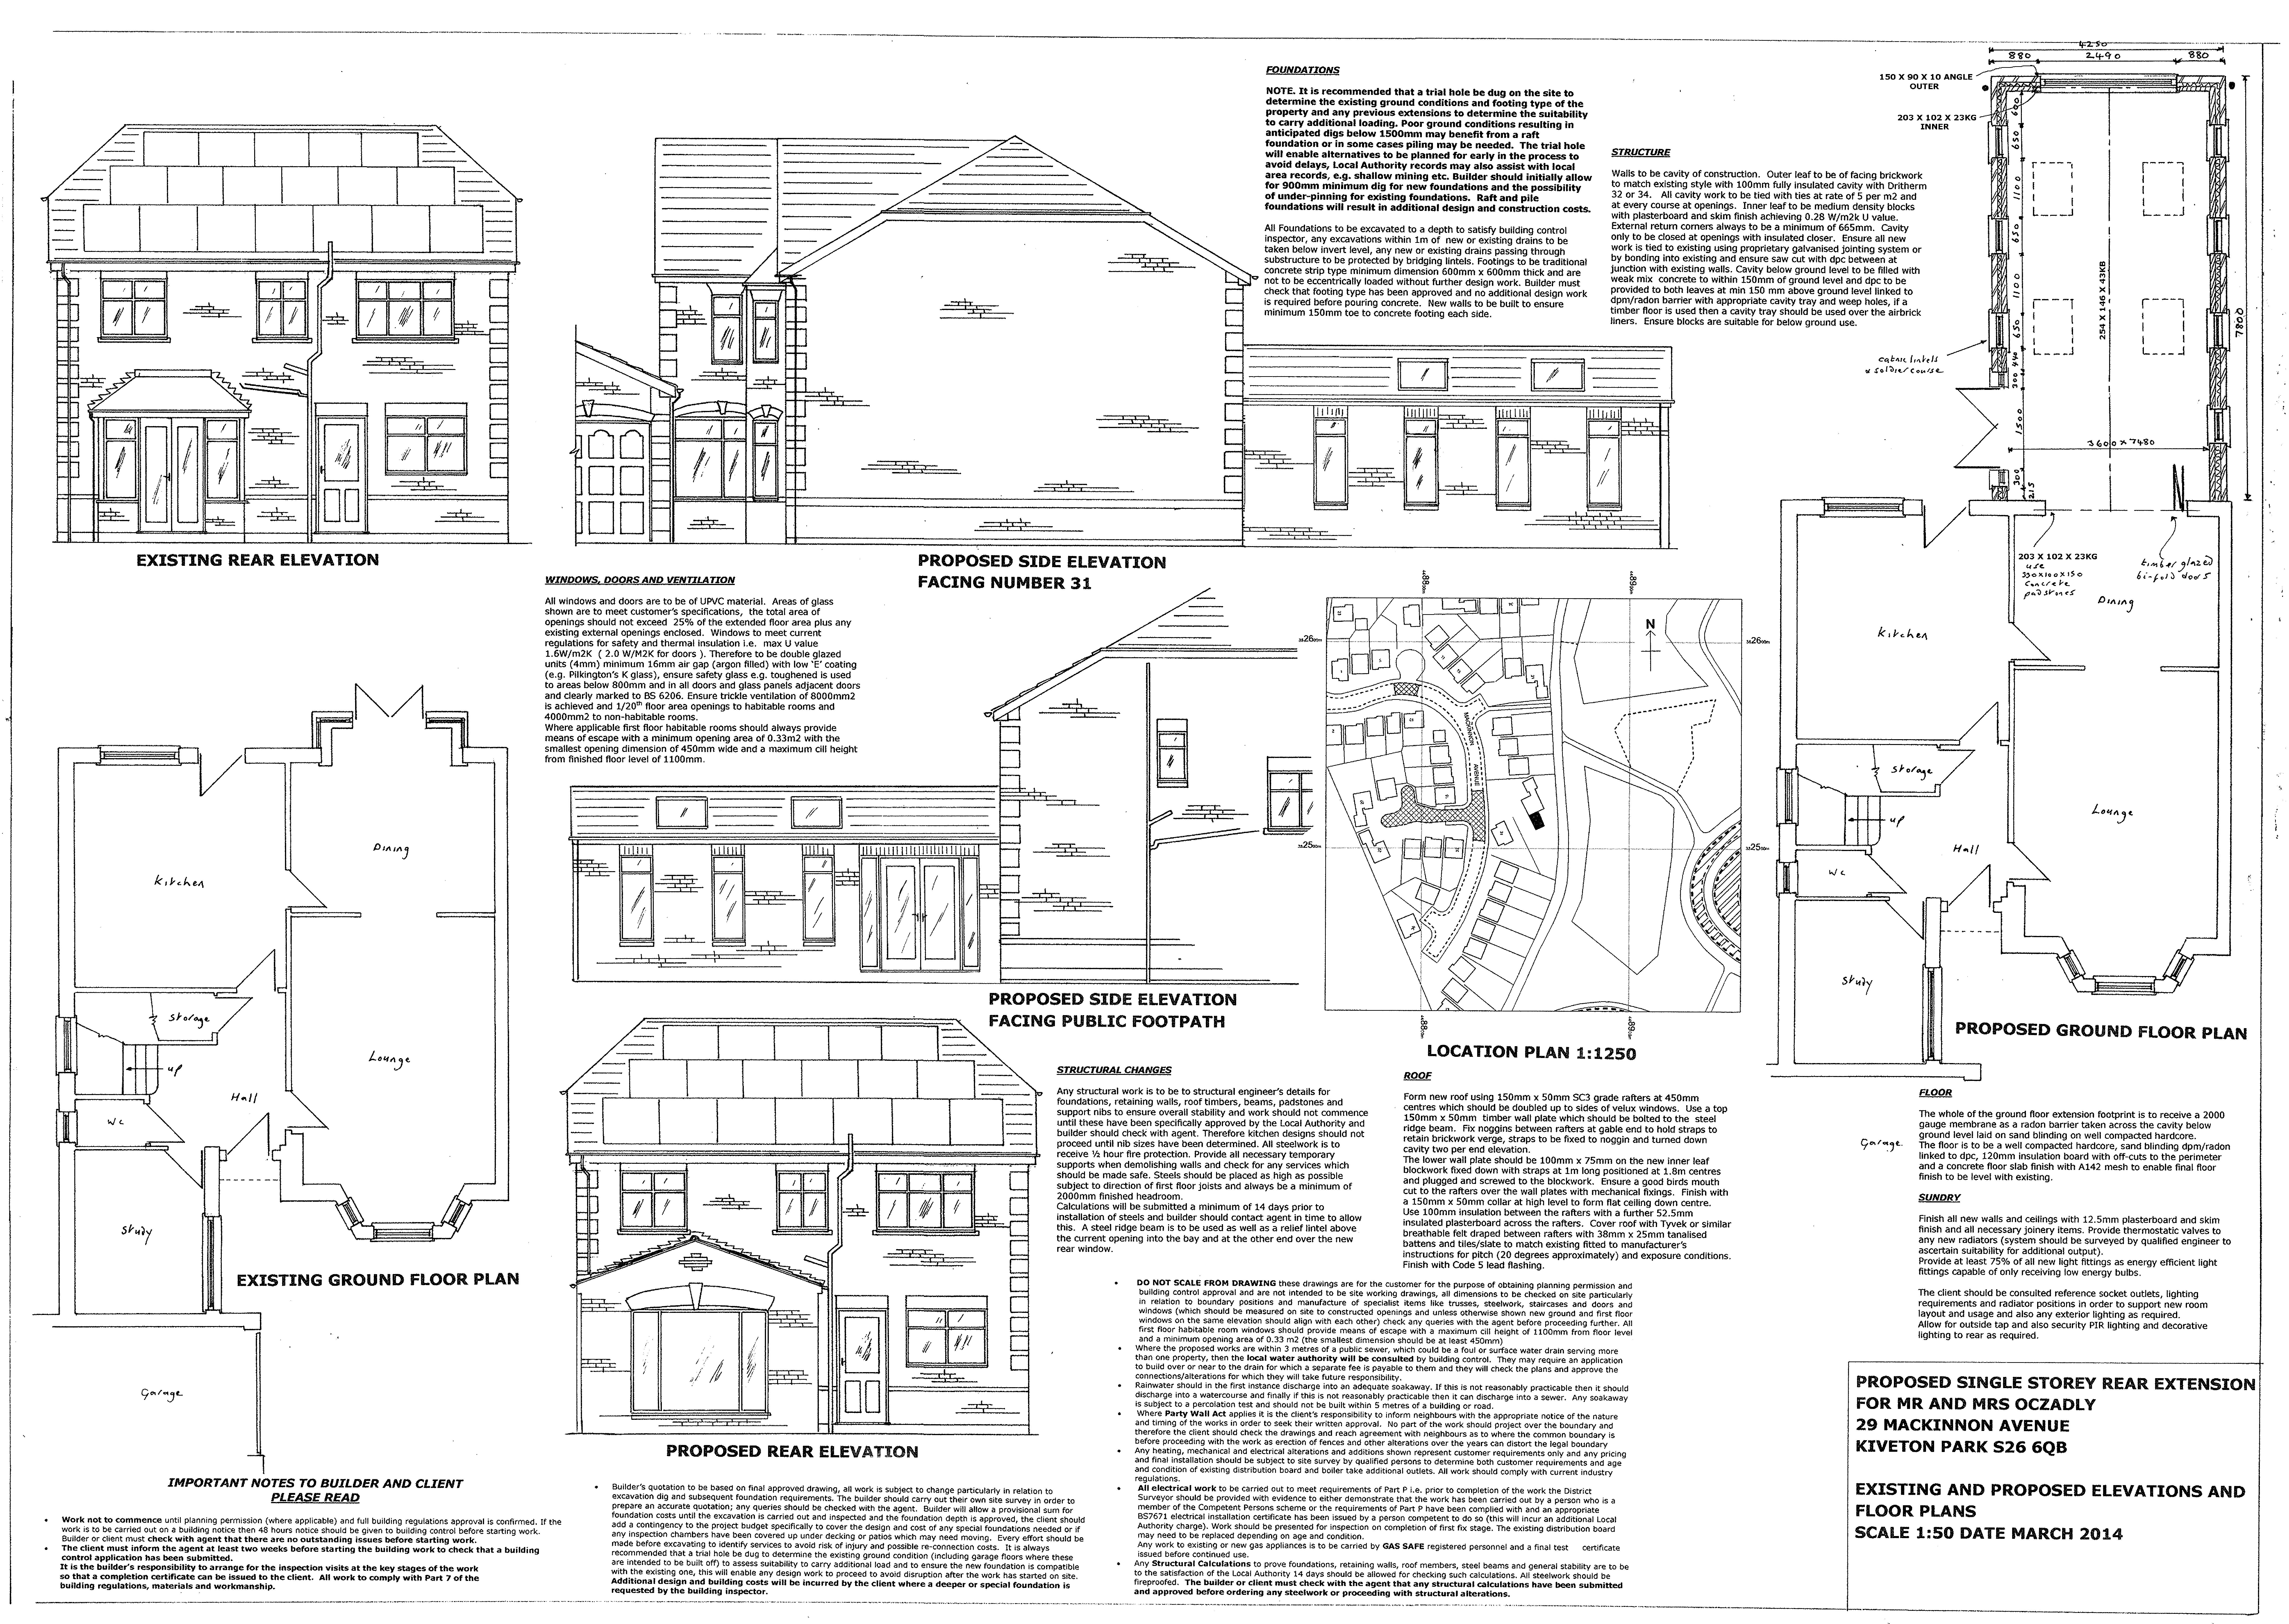 Existing and Proposed Plans